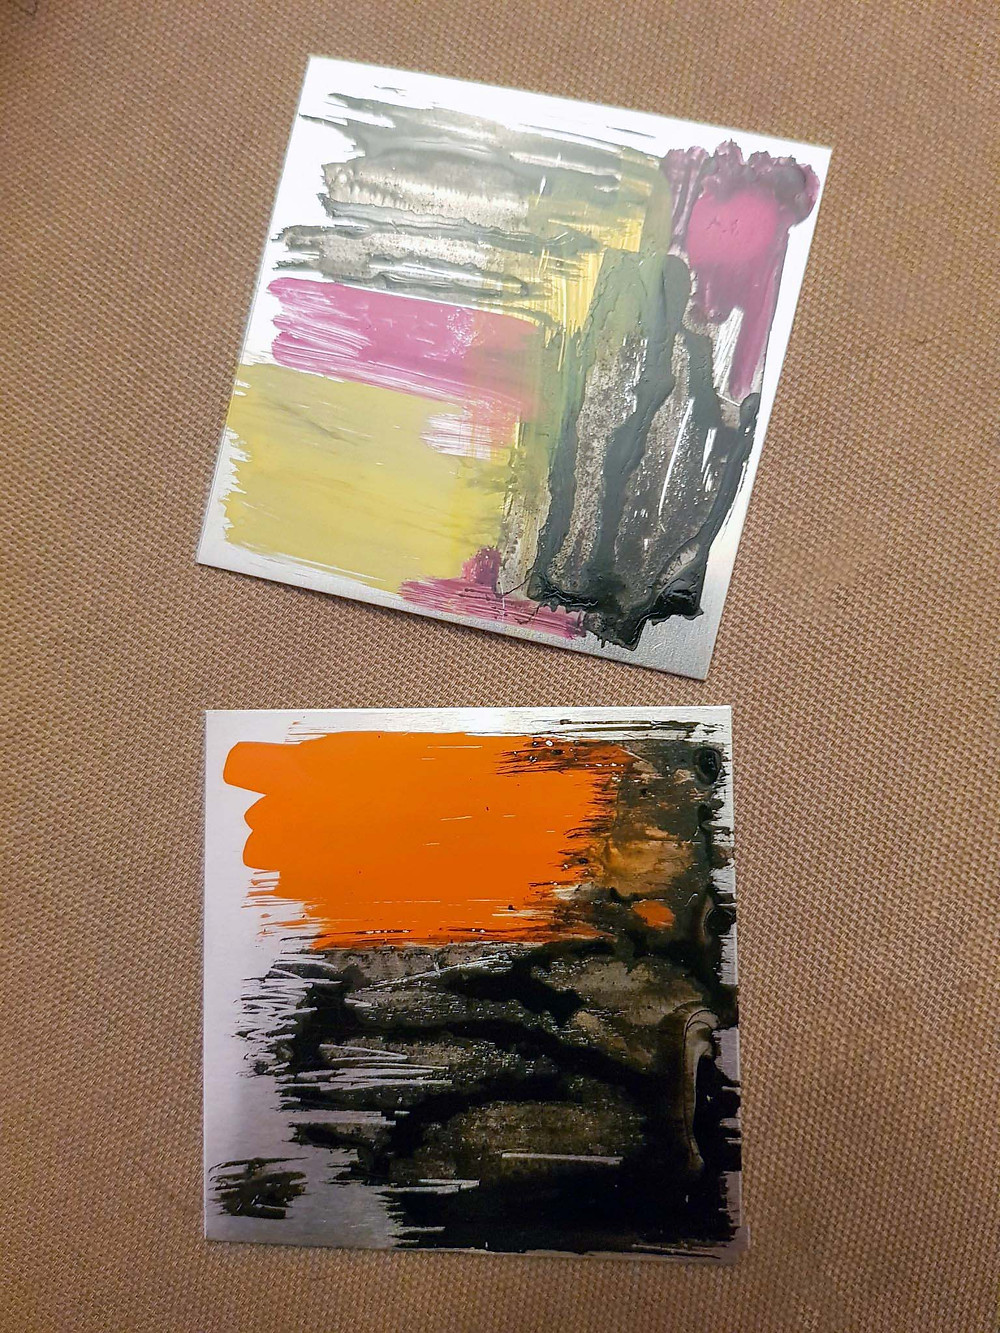 2 aluminium squares with coloured pigments brushed on